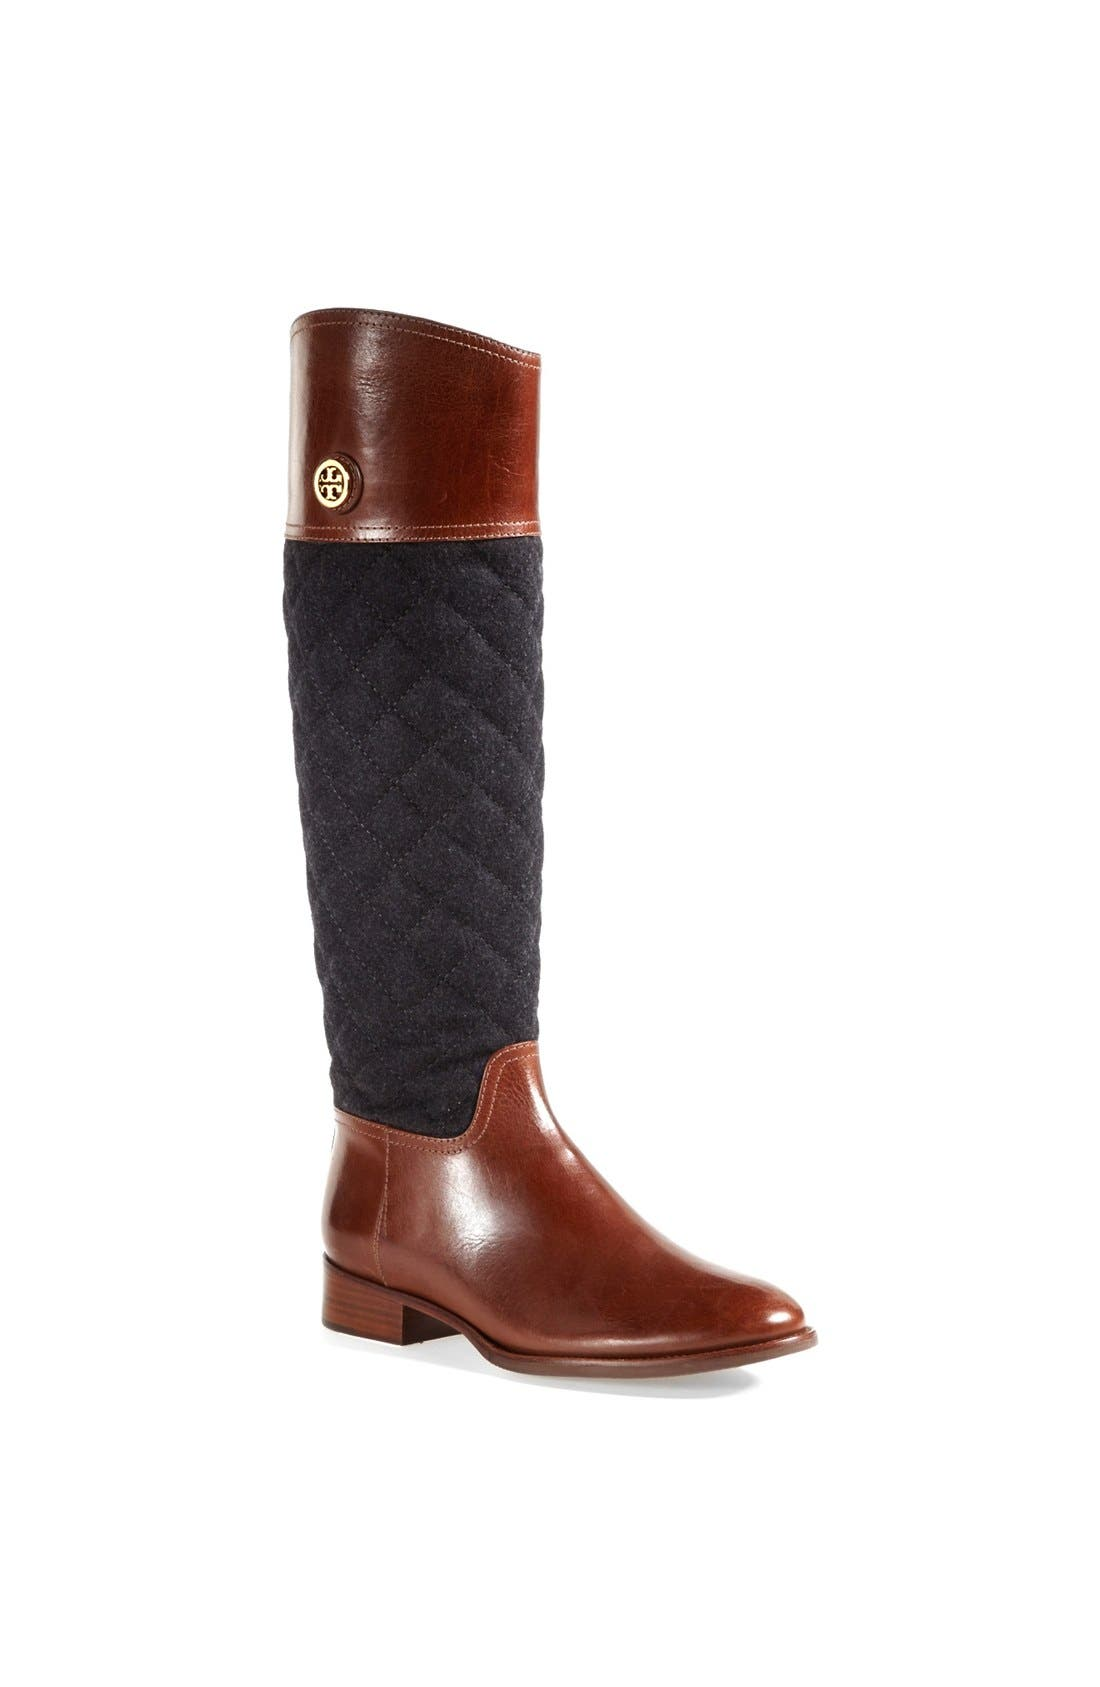 Main Image - Tory Burch 'Rosalie' Riding Boot